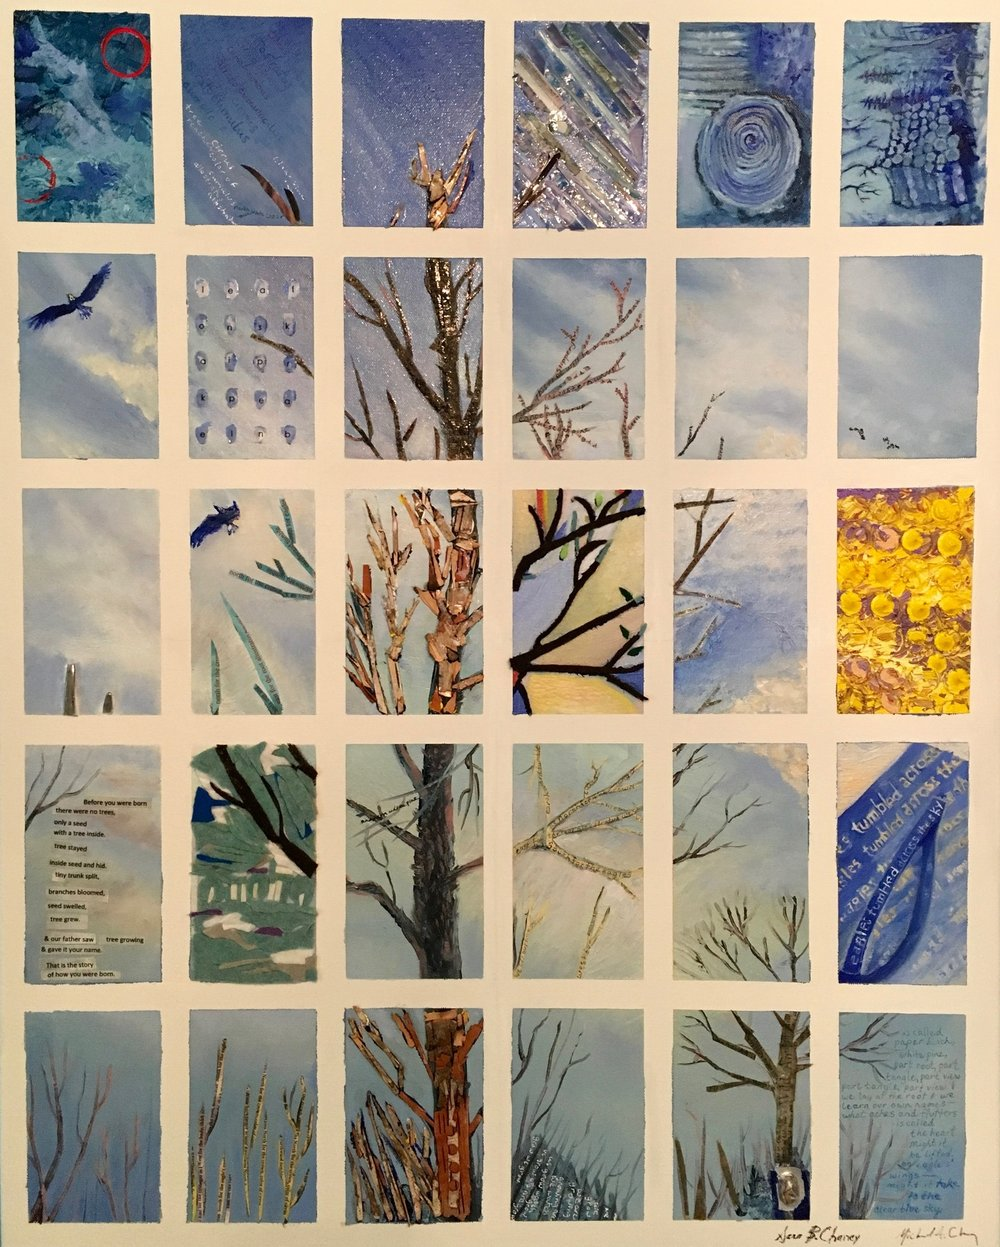 MICHAEL AND SARA CHANEY  - White River Junction, NY   Almanac #7 Tree   mixed media, $1,500